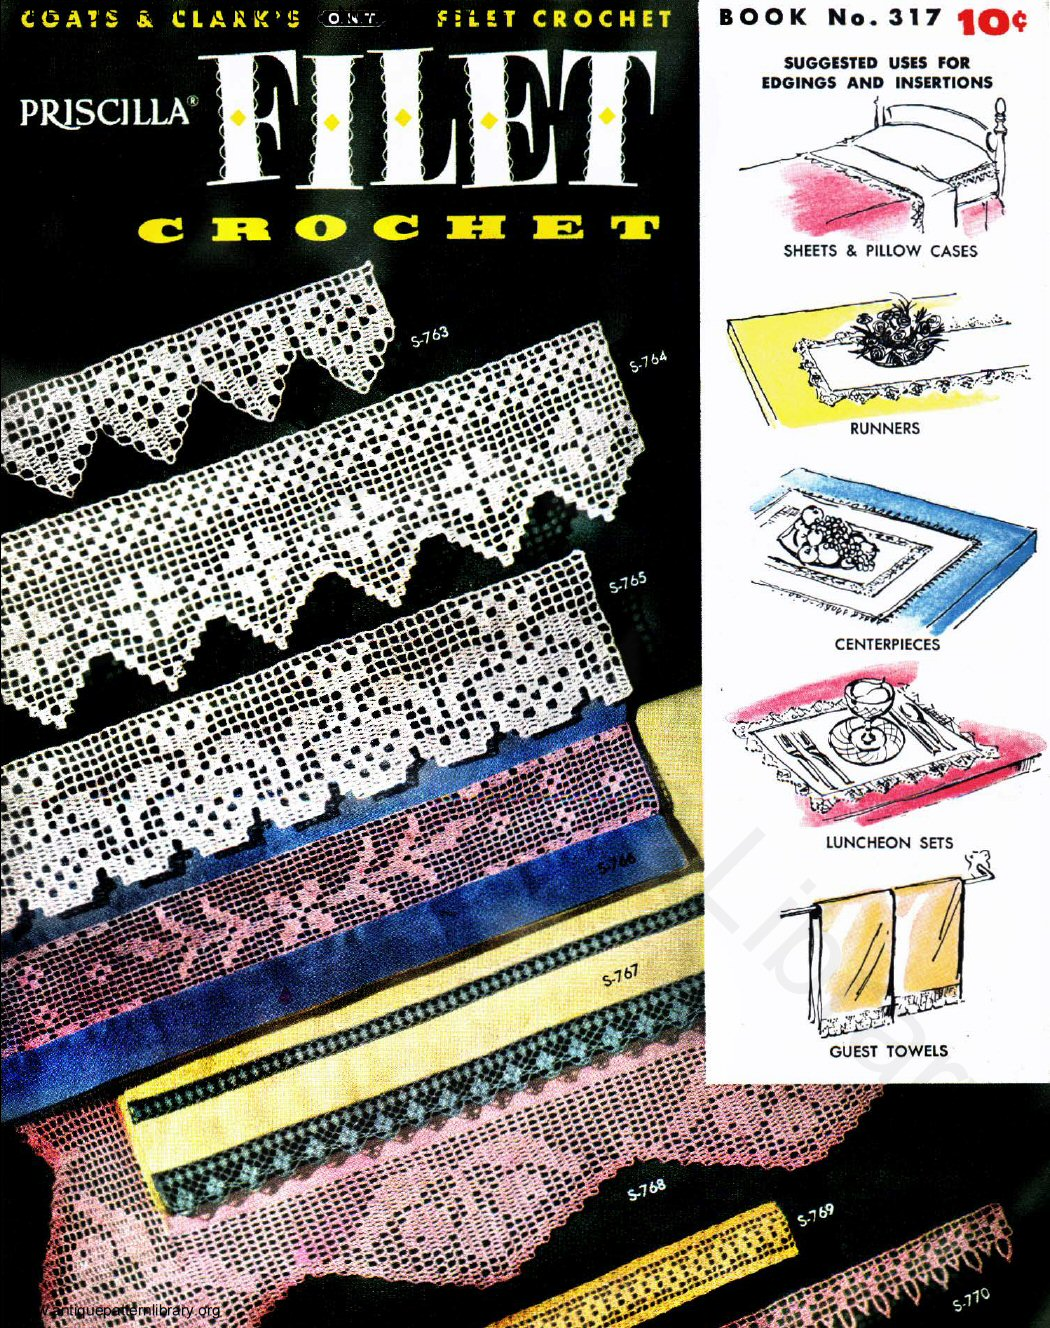 6-TA006 Coats & Clark's O.N.T. Filet Crochet Book No. 317 Priscilla Filet Crochet